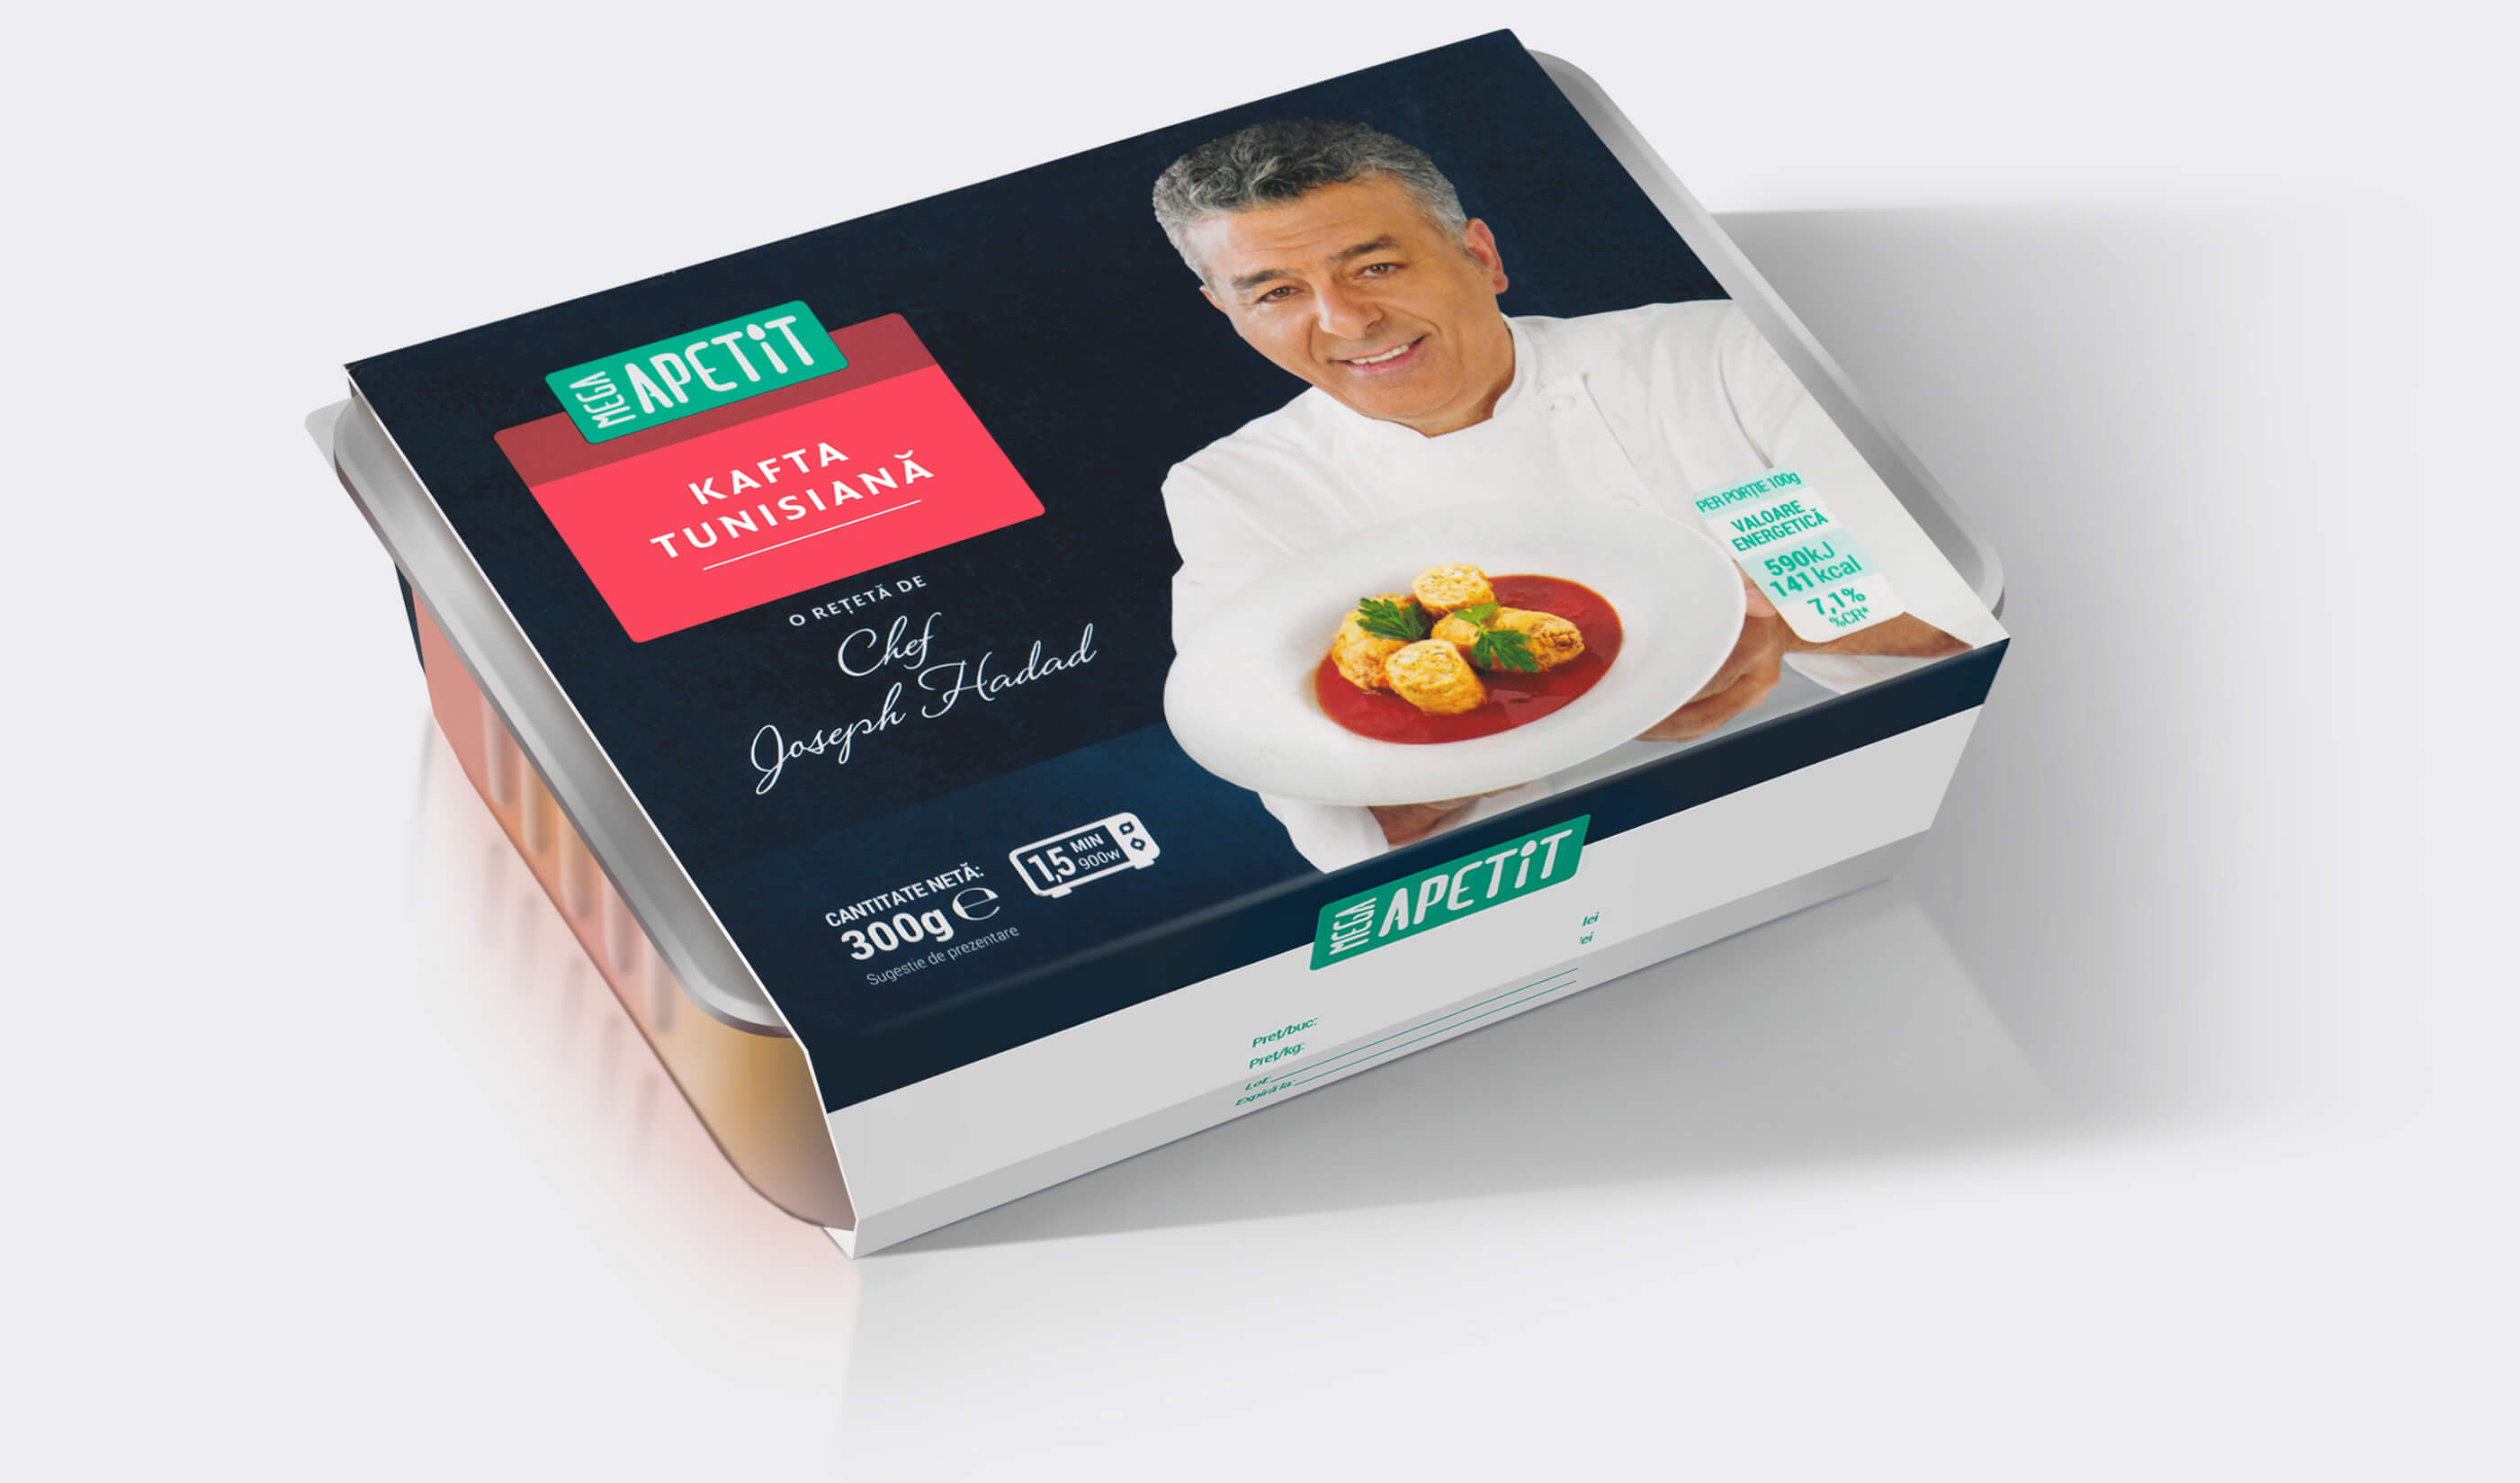 Mega Apetit chef signature product